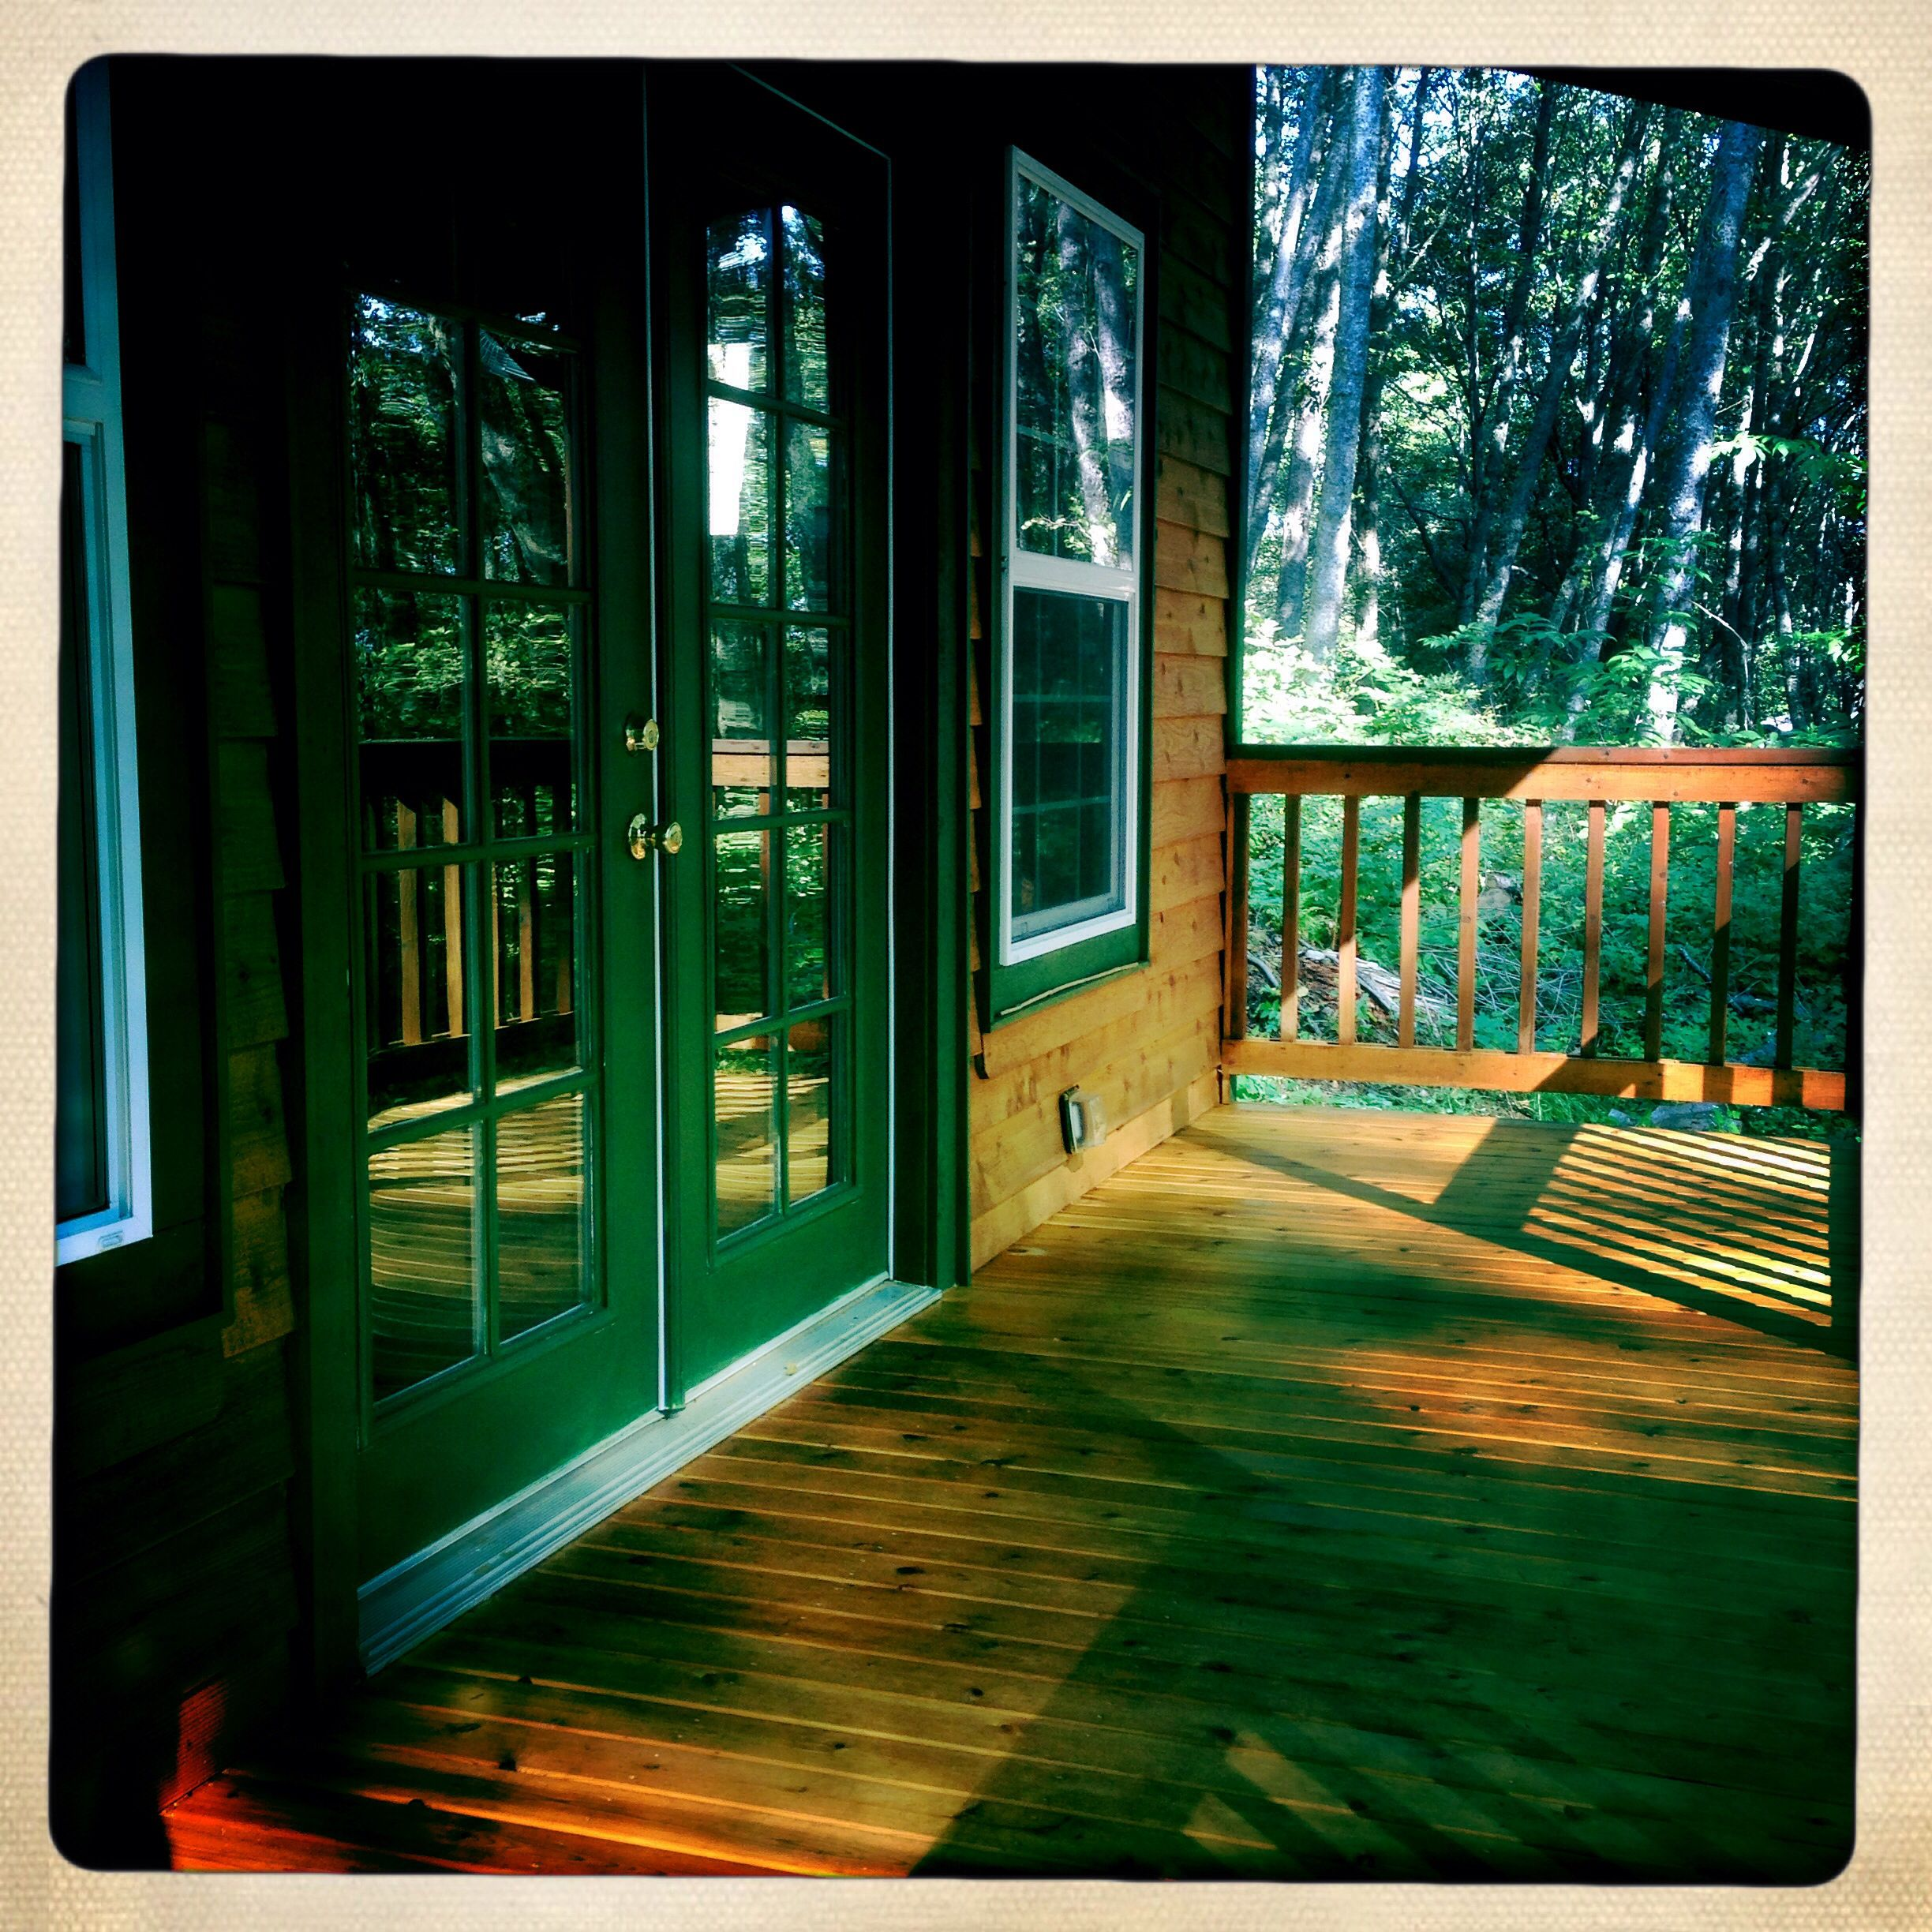 Porch, adds more usable area and is great for just relaxing.